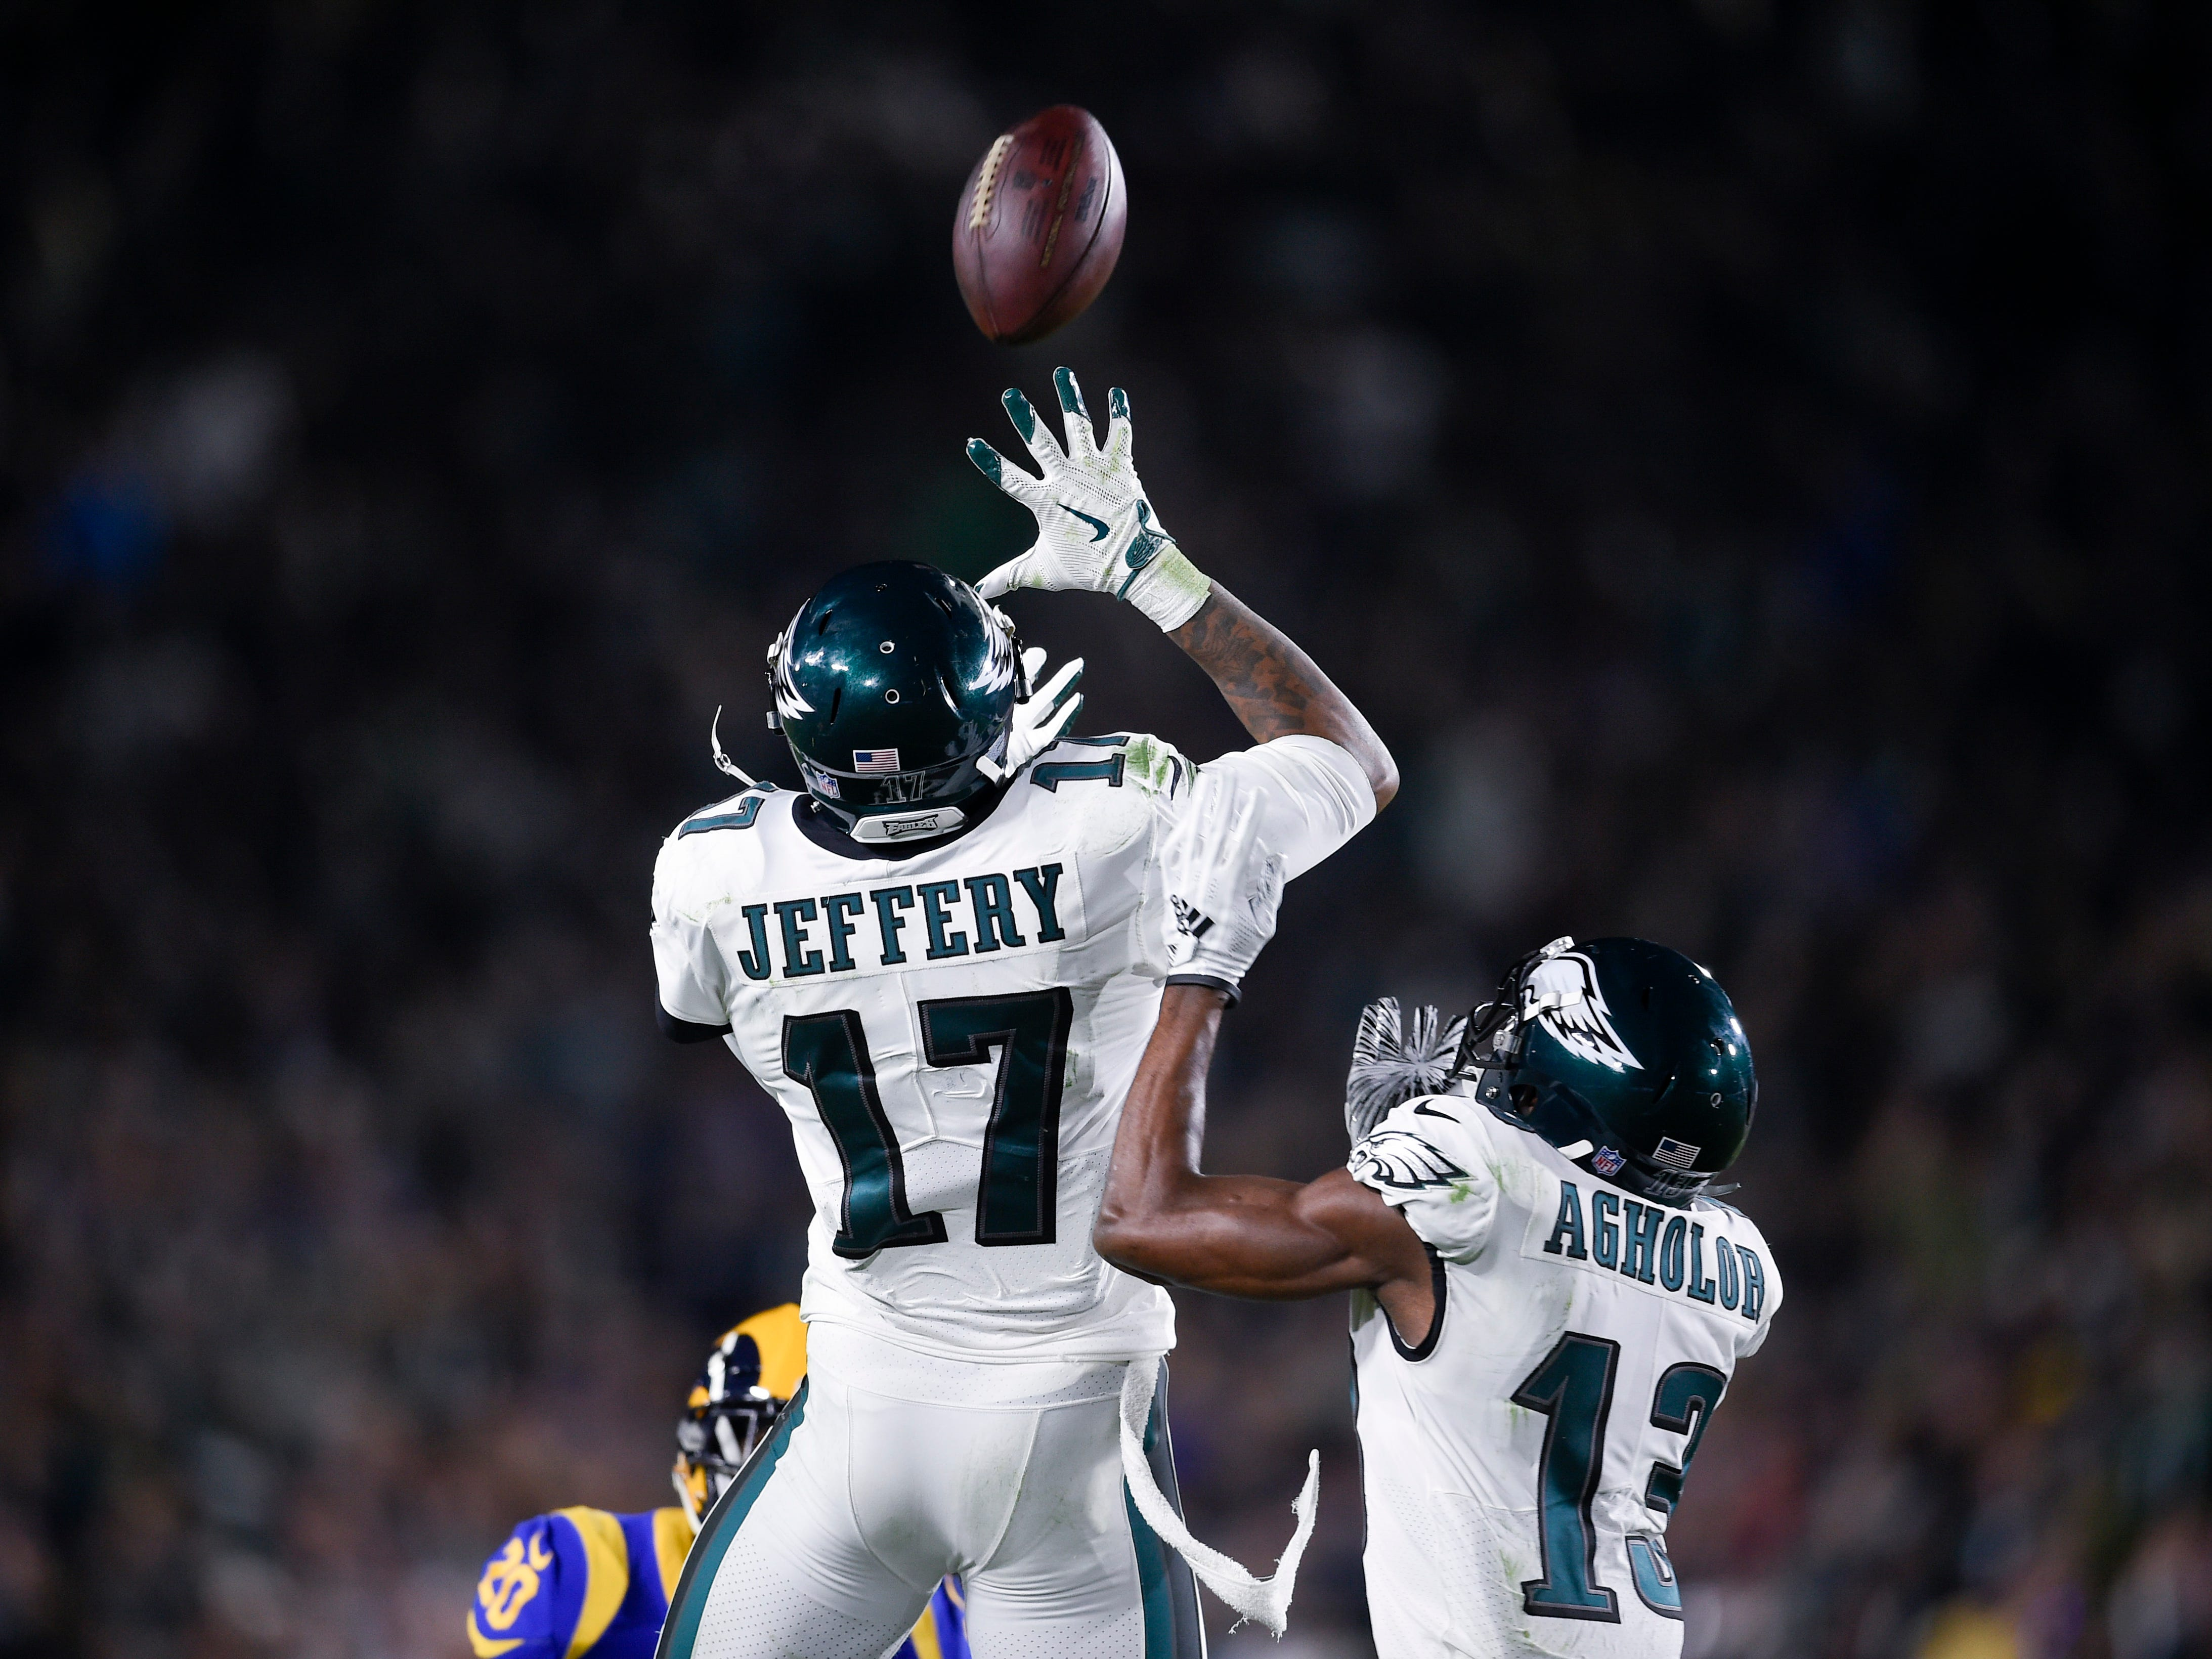 Philadelphia Eagles wide receiver Alshon Jeffery (17) goes up for a pass during the second half against the Los Angeles Rams at Los Angeles Memorial Coliseum.